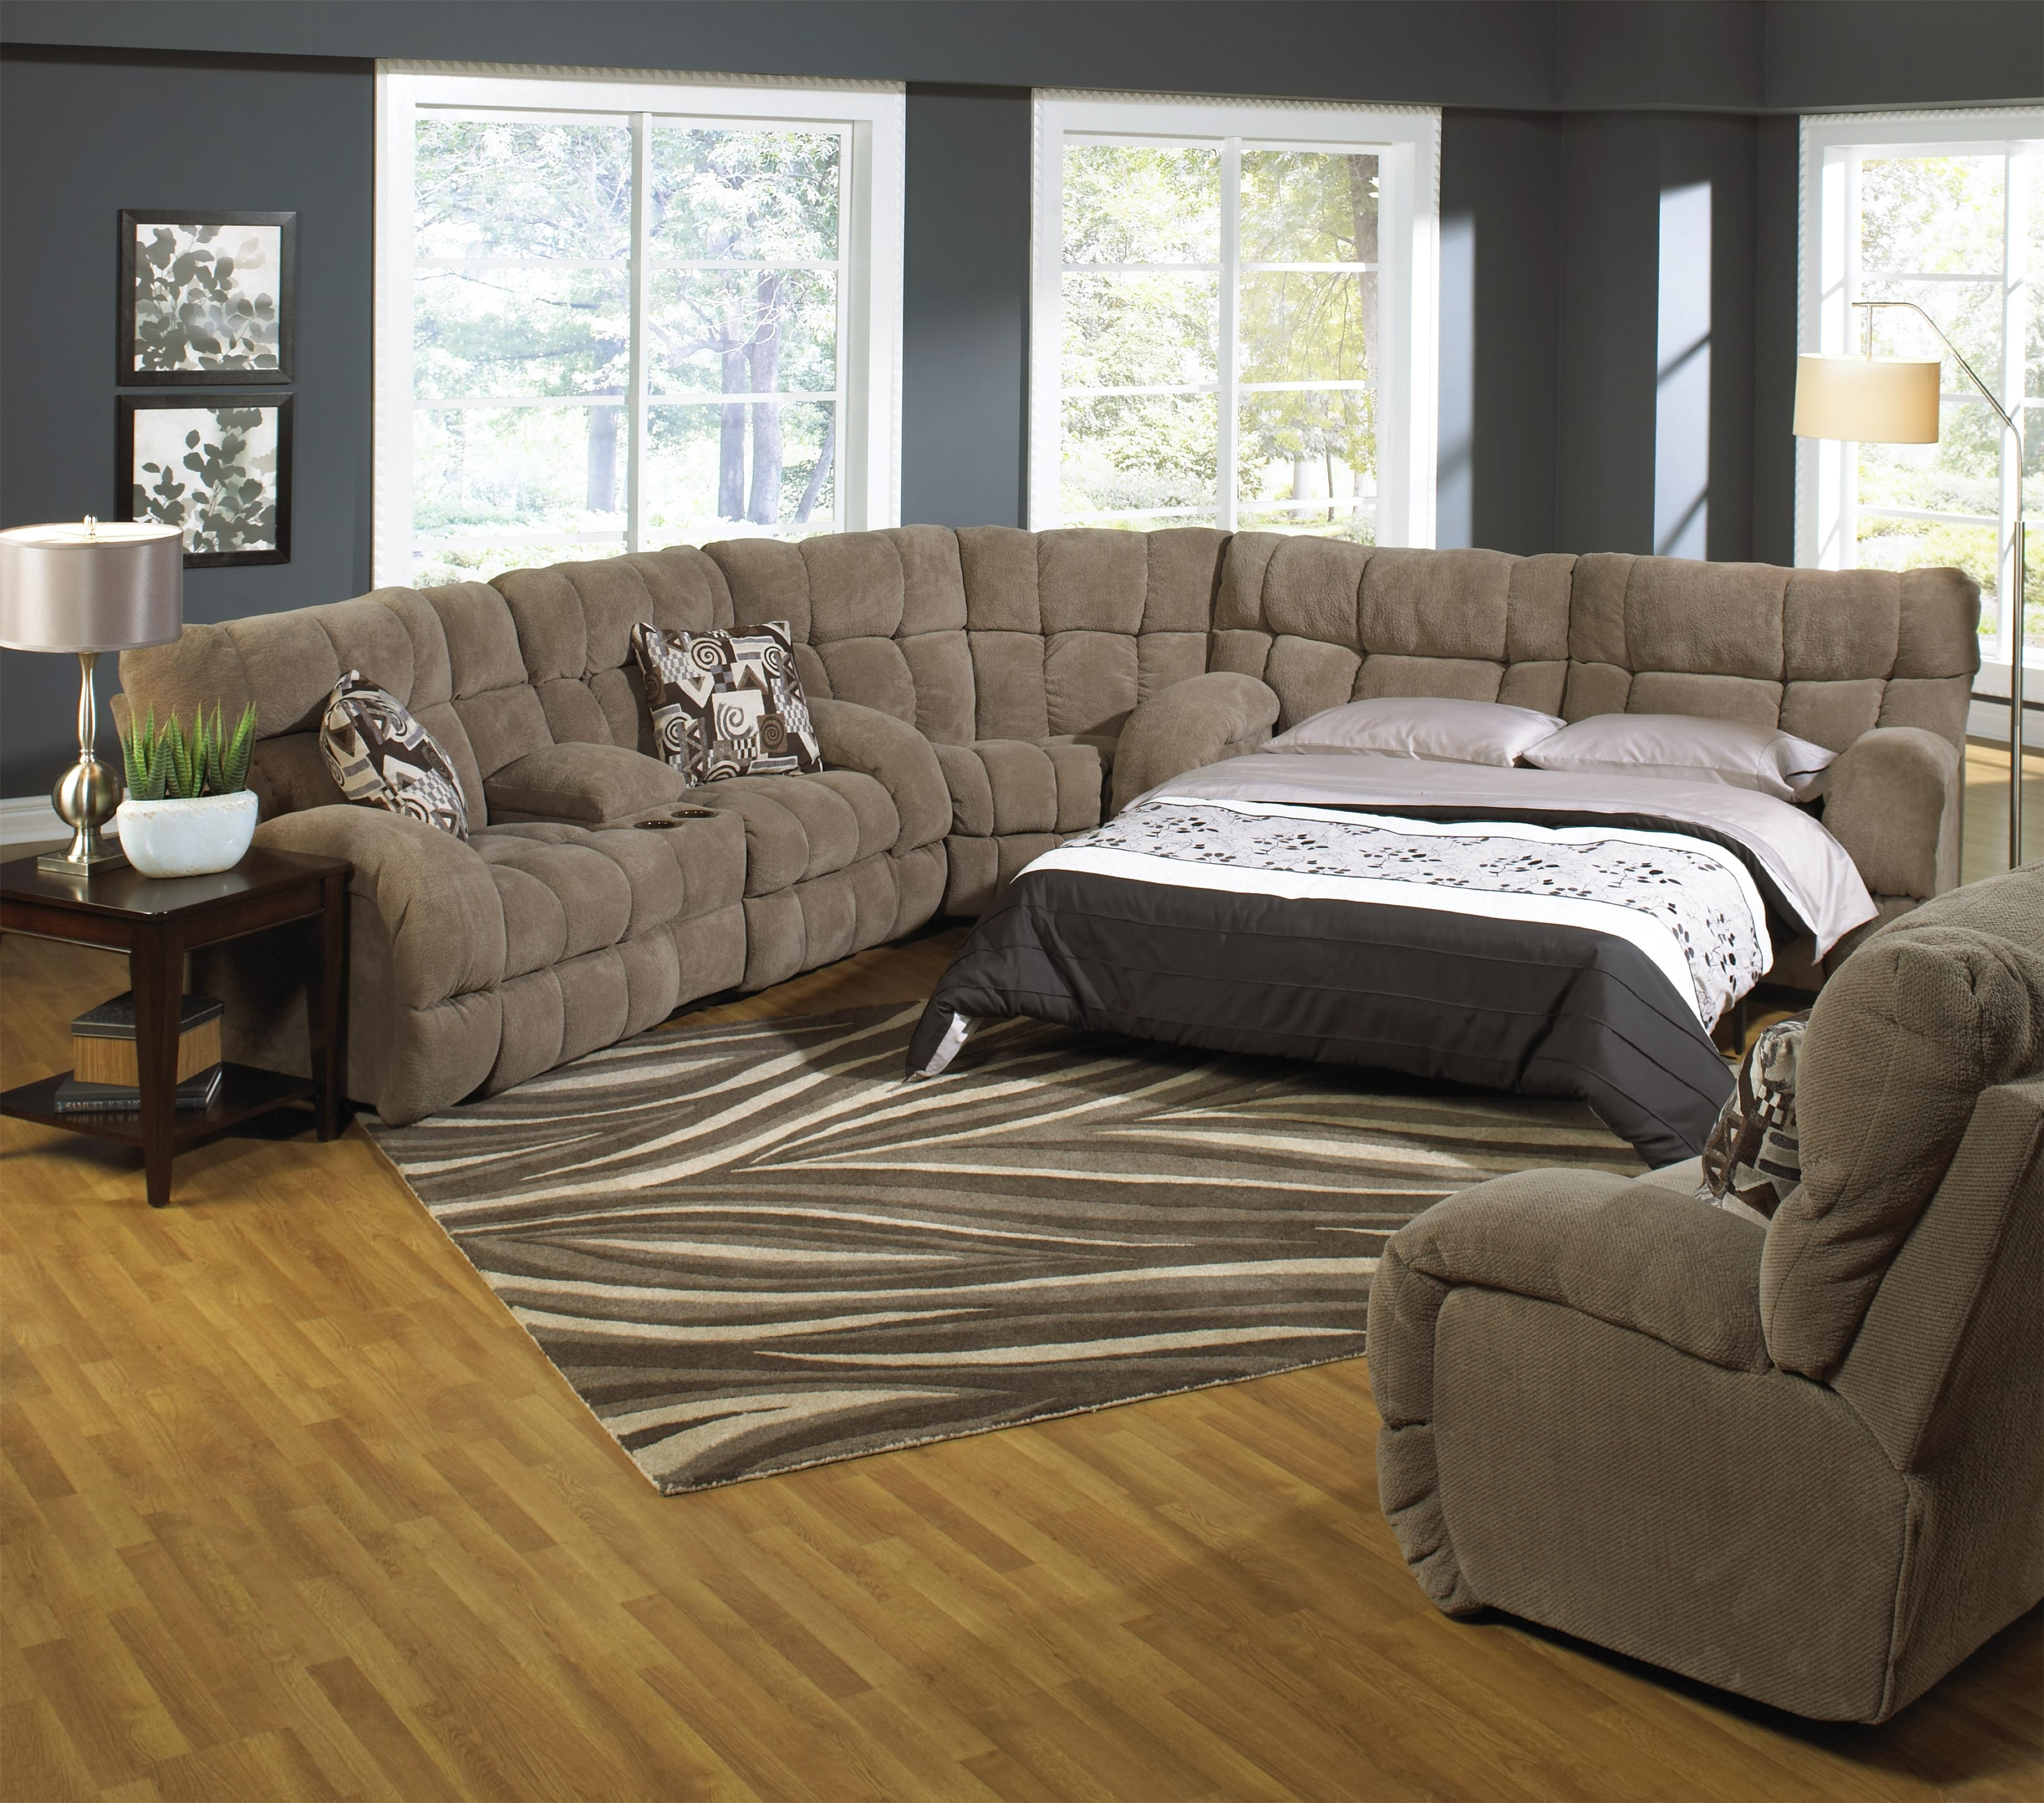 Reclining Sectional Sofa With Sofa Sleepercatnapper | Wolf And regarding Pull Out Beds Sectional Sofas (Image 6 of 10)